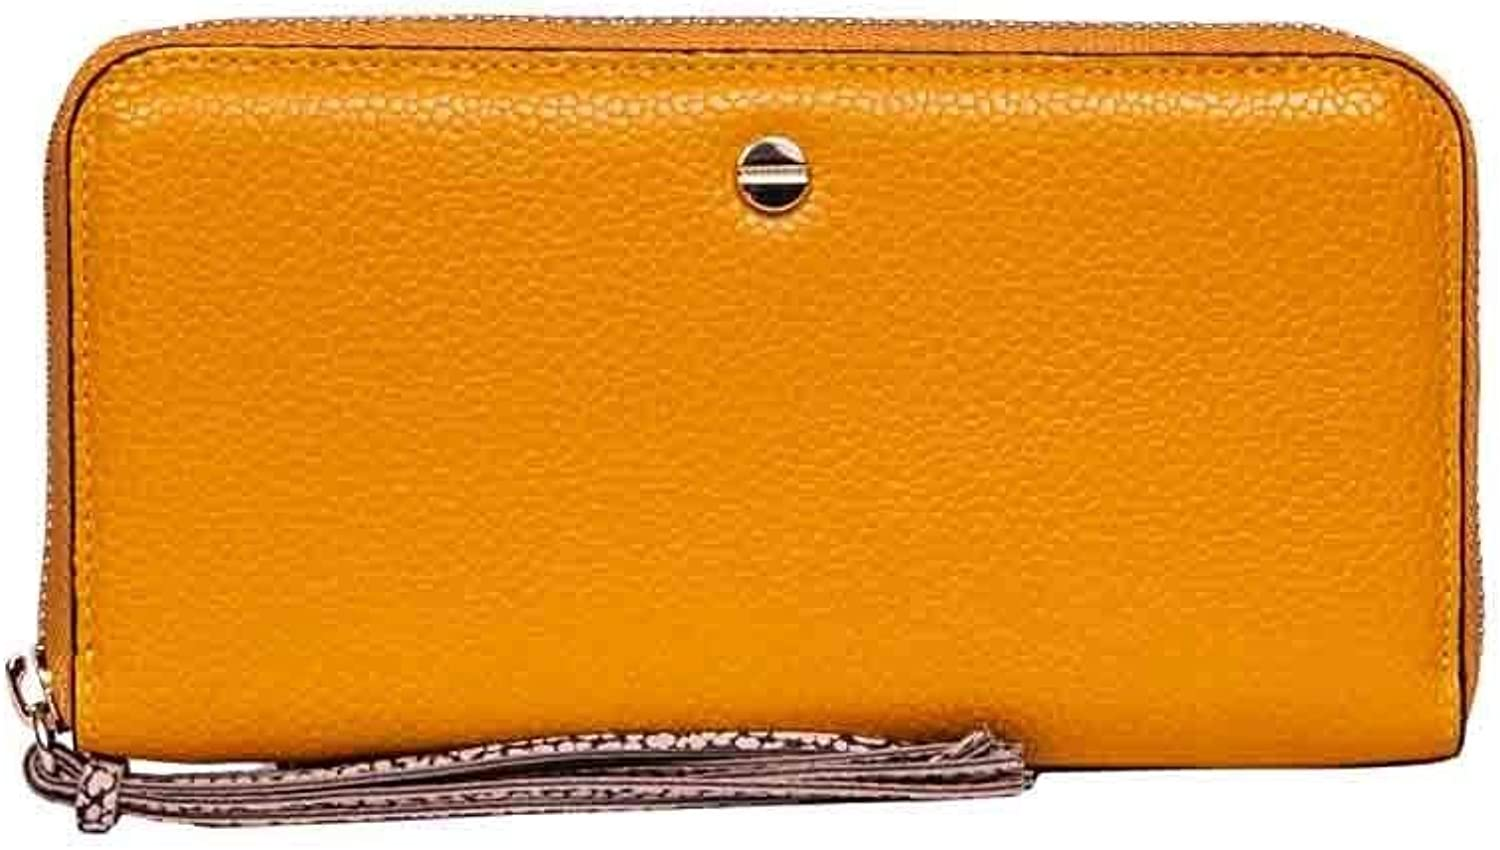 Borbonese Women's 950197F96707 Yellow Leather Wallet